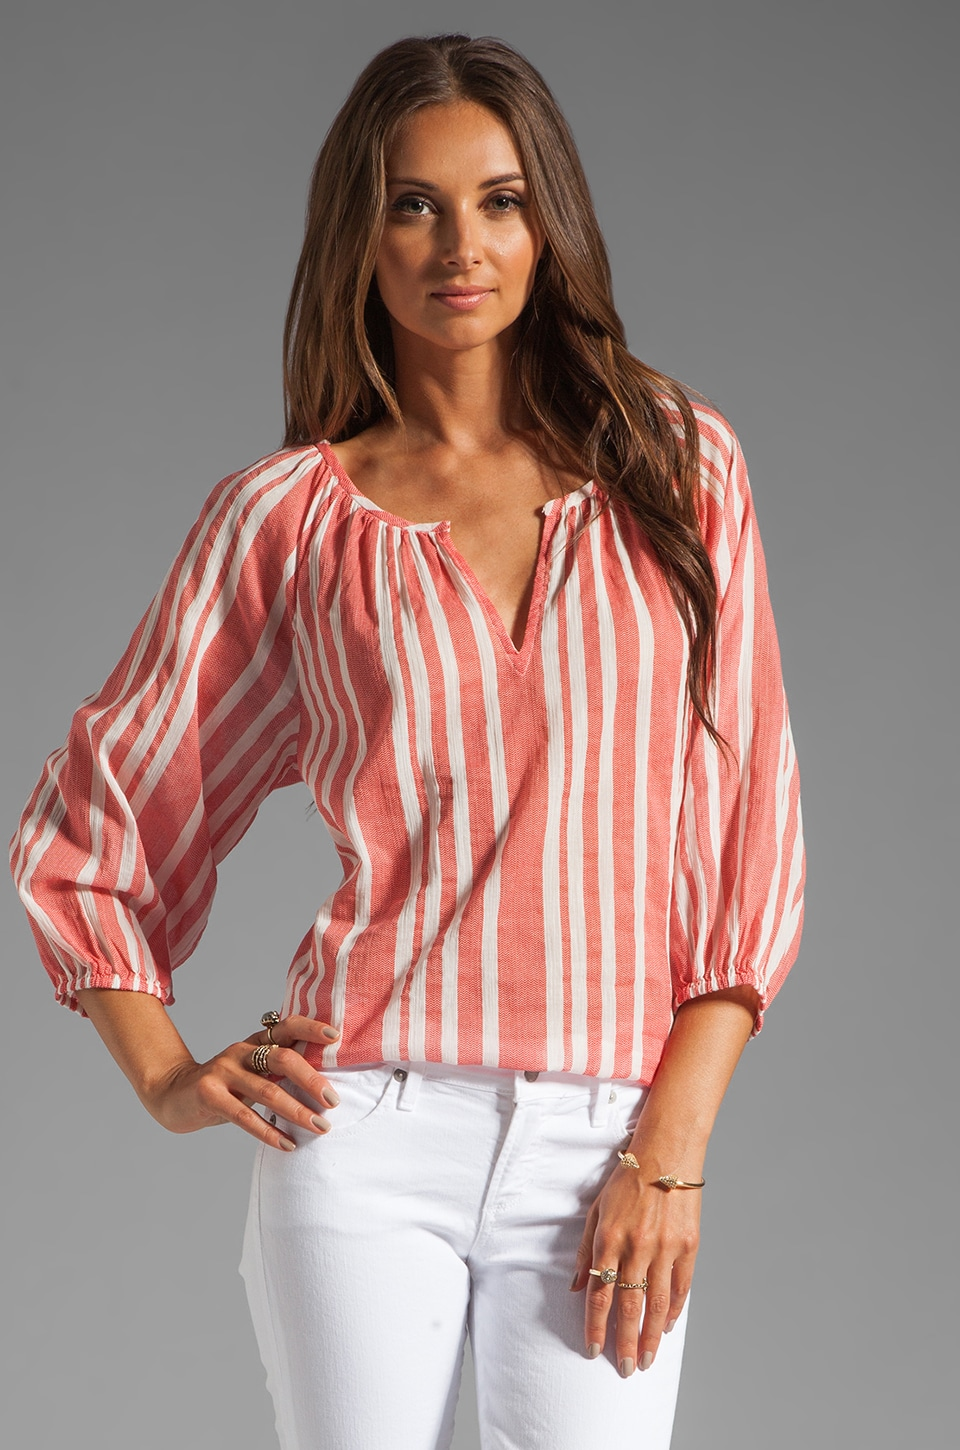 Joie Meridian Chevron Blouse in Cherry